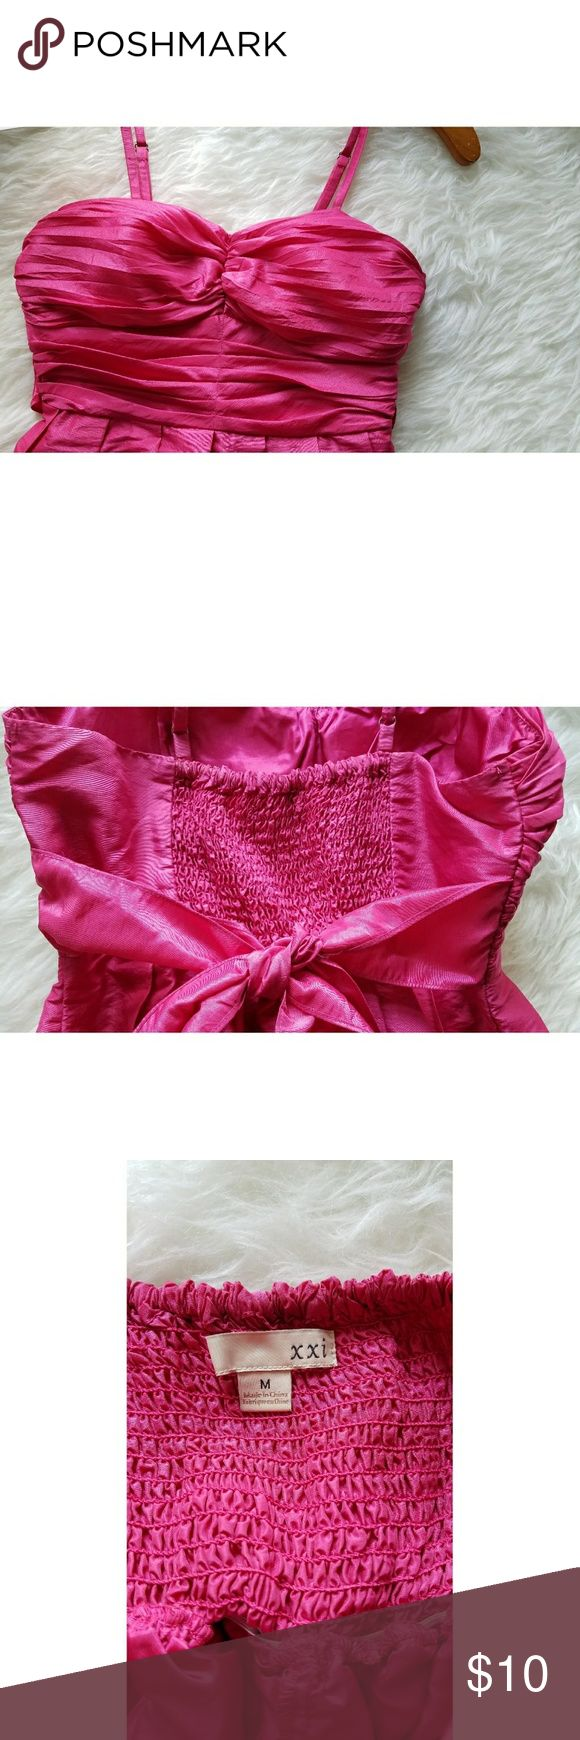 Hot Pink Dress Worn once, good condition but has one small, light stain on front of dress (see last 2 pics of close-ups).  Smoke-free, pet-free home. Forever 21 Dresses Prom